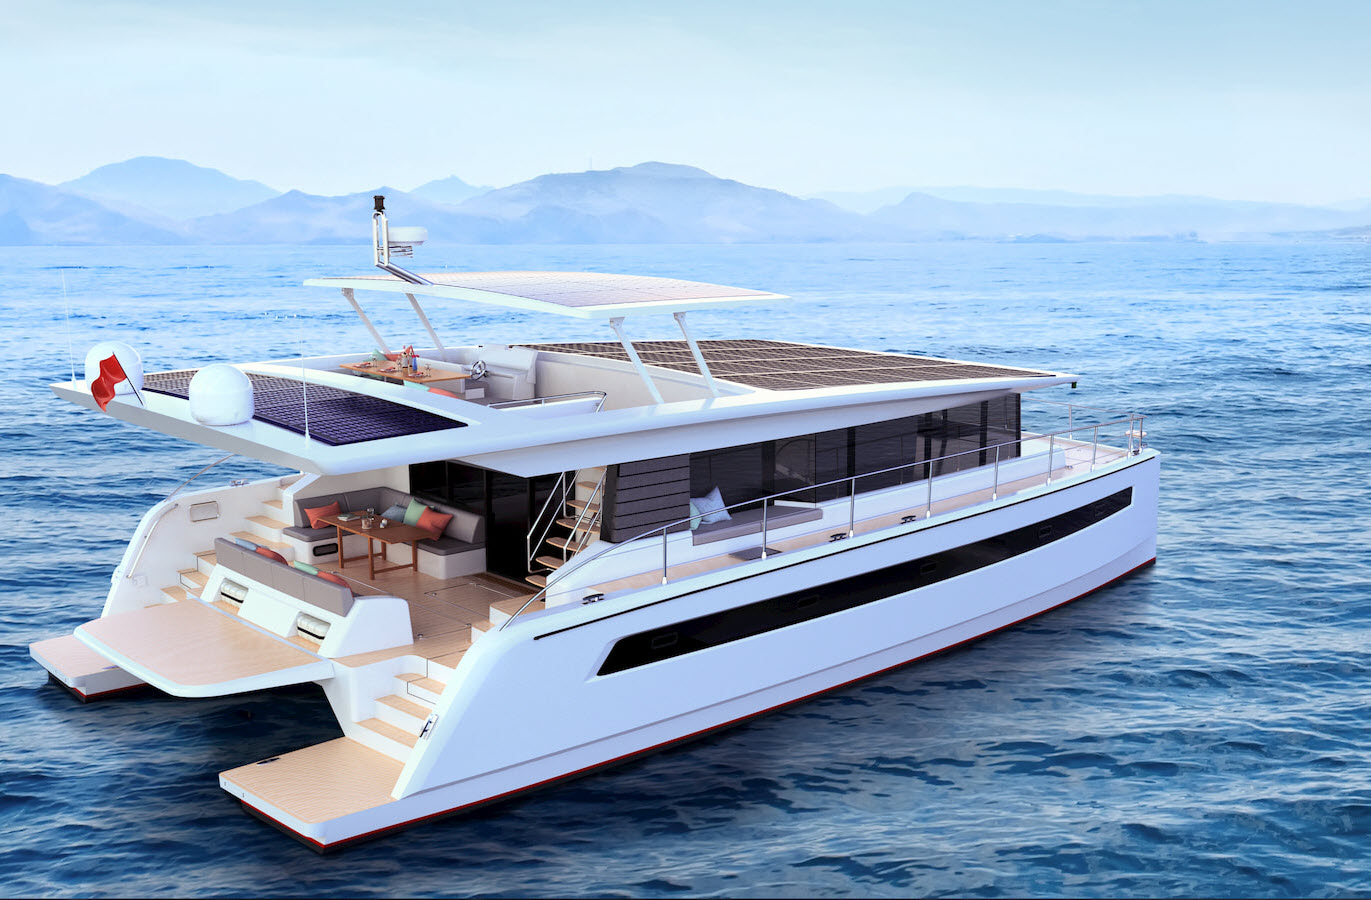 The story behind Silent Yachts